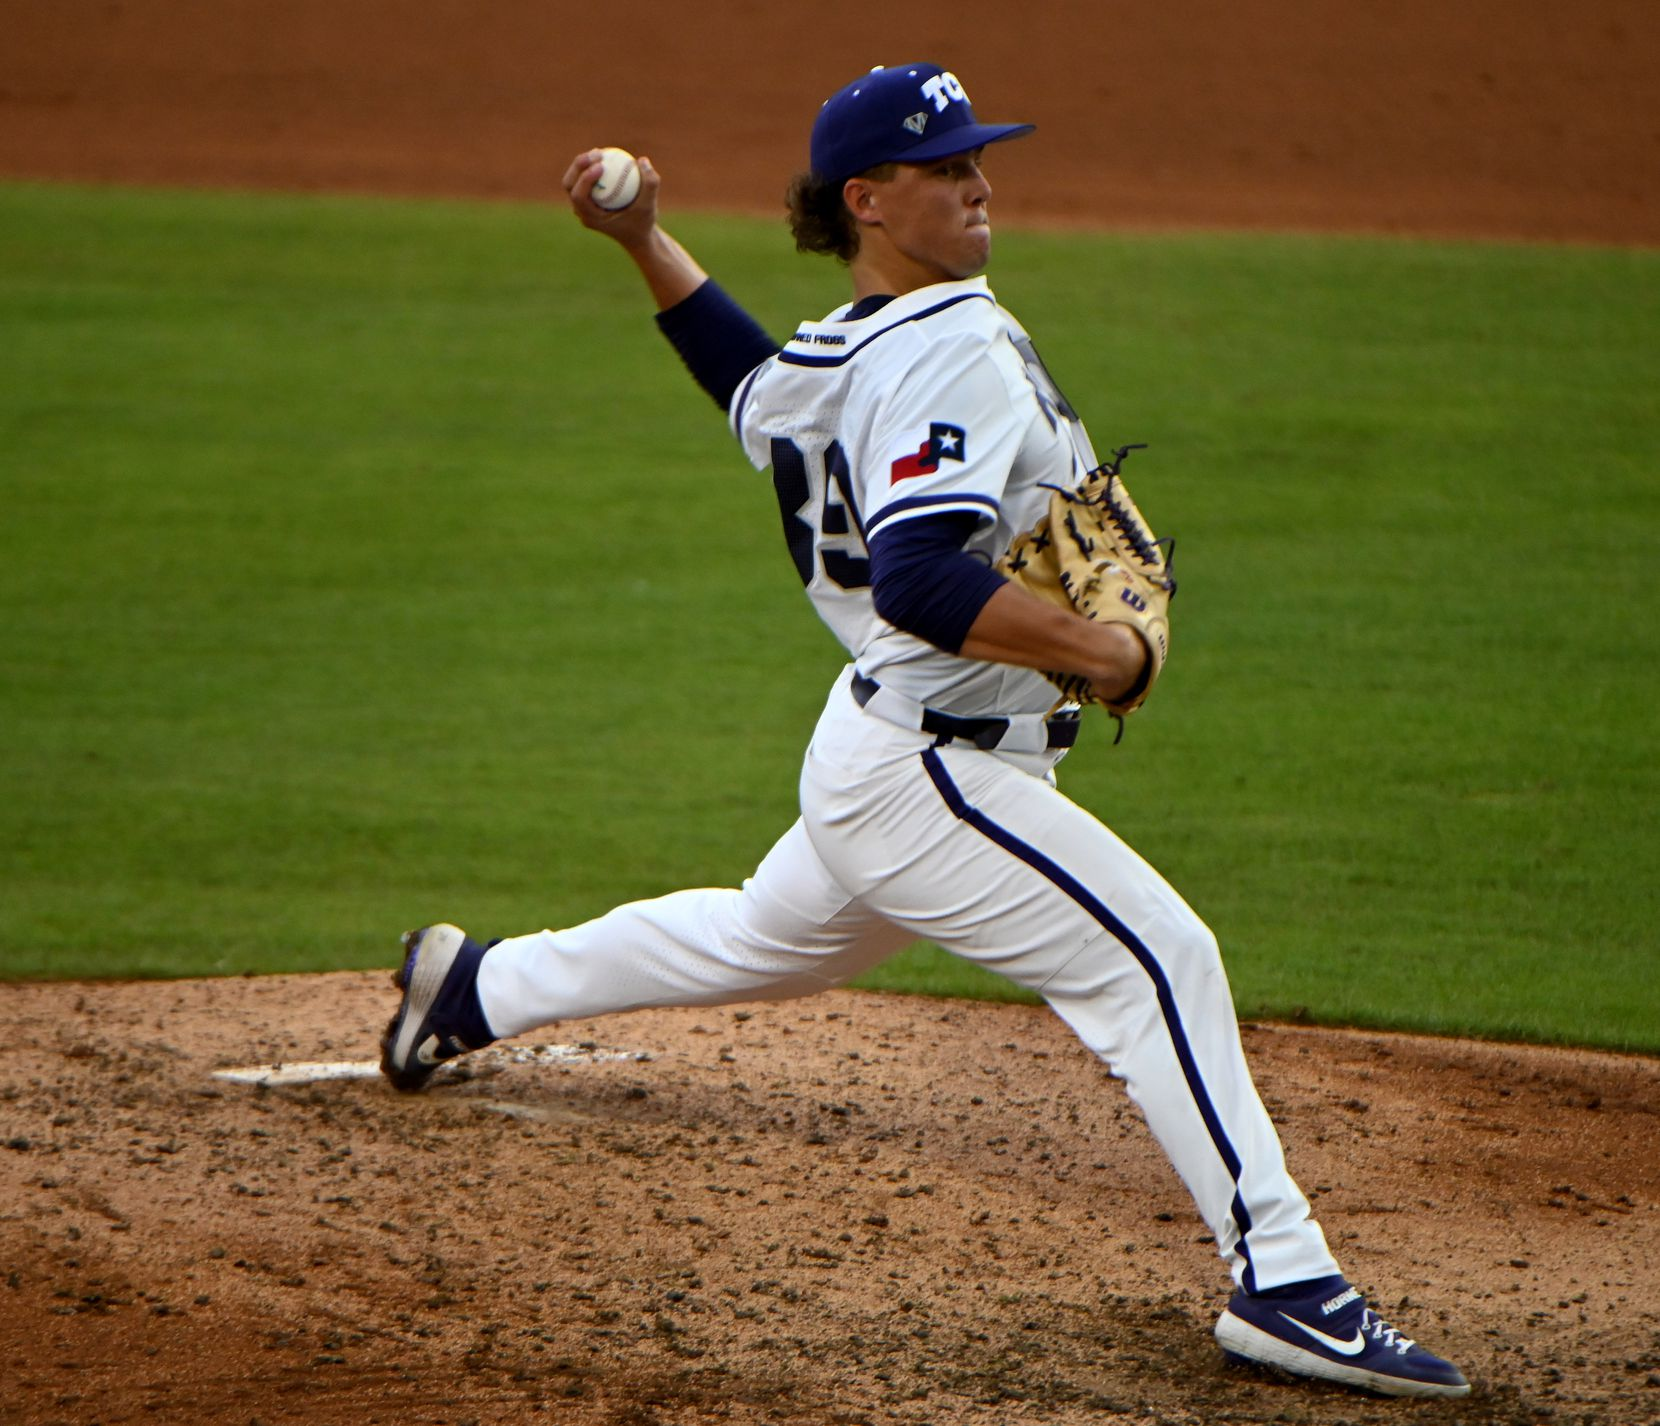 TCU pitcher Austin Krob (39) pitches in the fifth inning of game against McNeese State in the Forth Worth Regional NCAA baseball tournament, Friday, June 4, 2021, in Fort Worth, Texas. (Matt Strasen/Special Contributor)